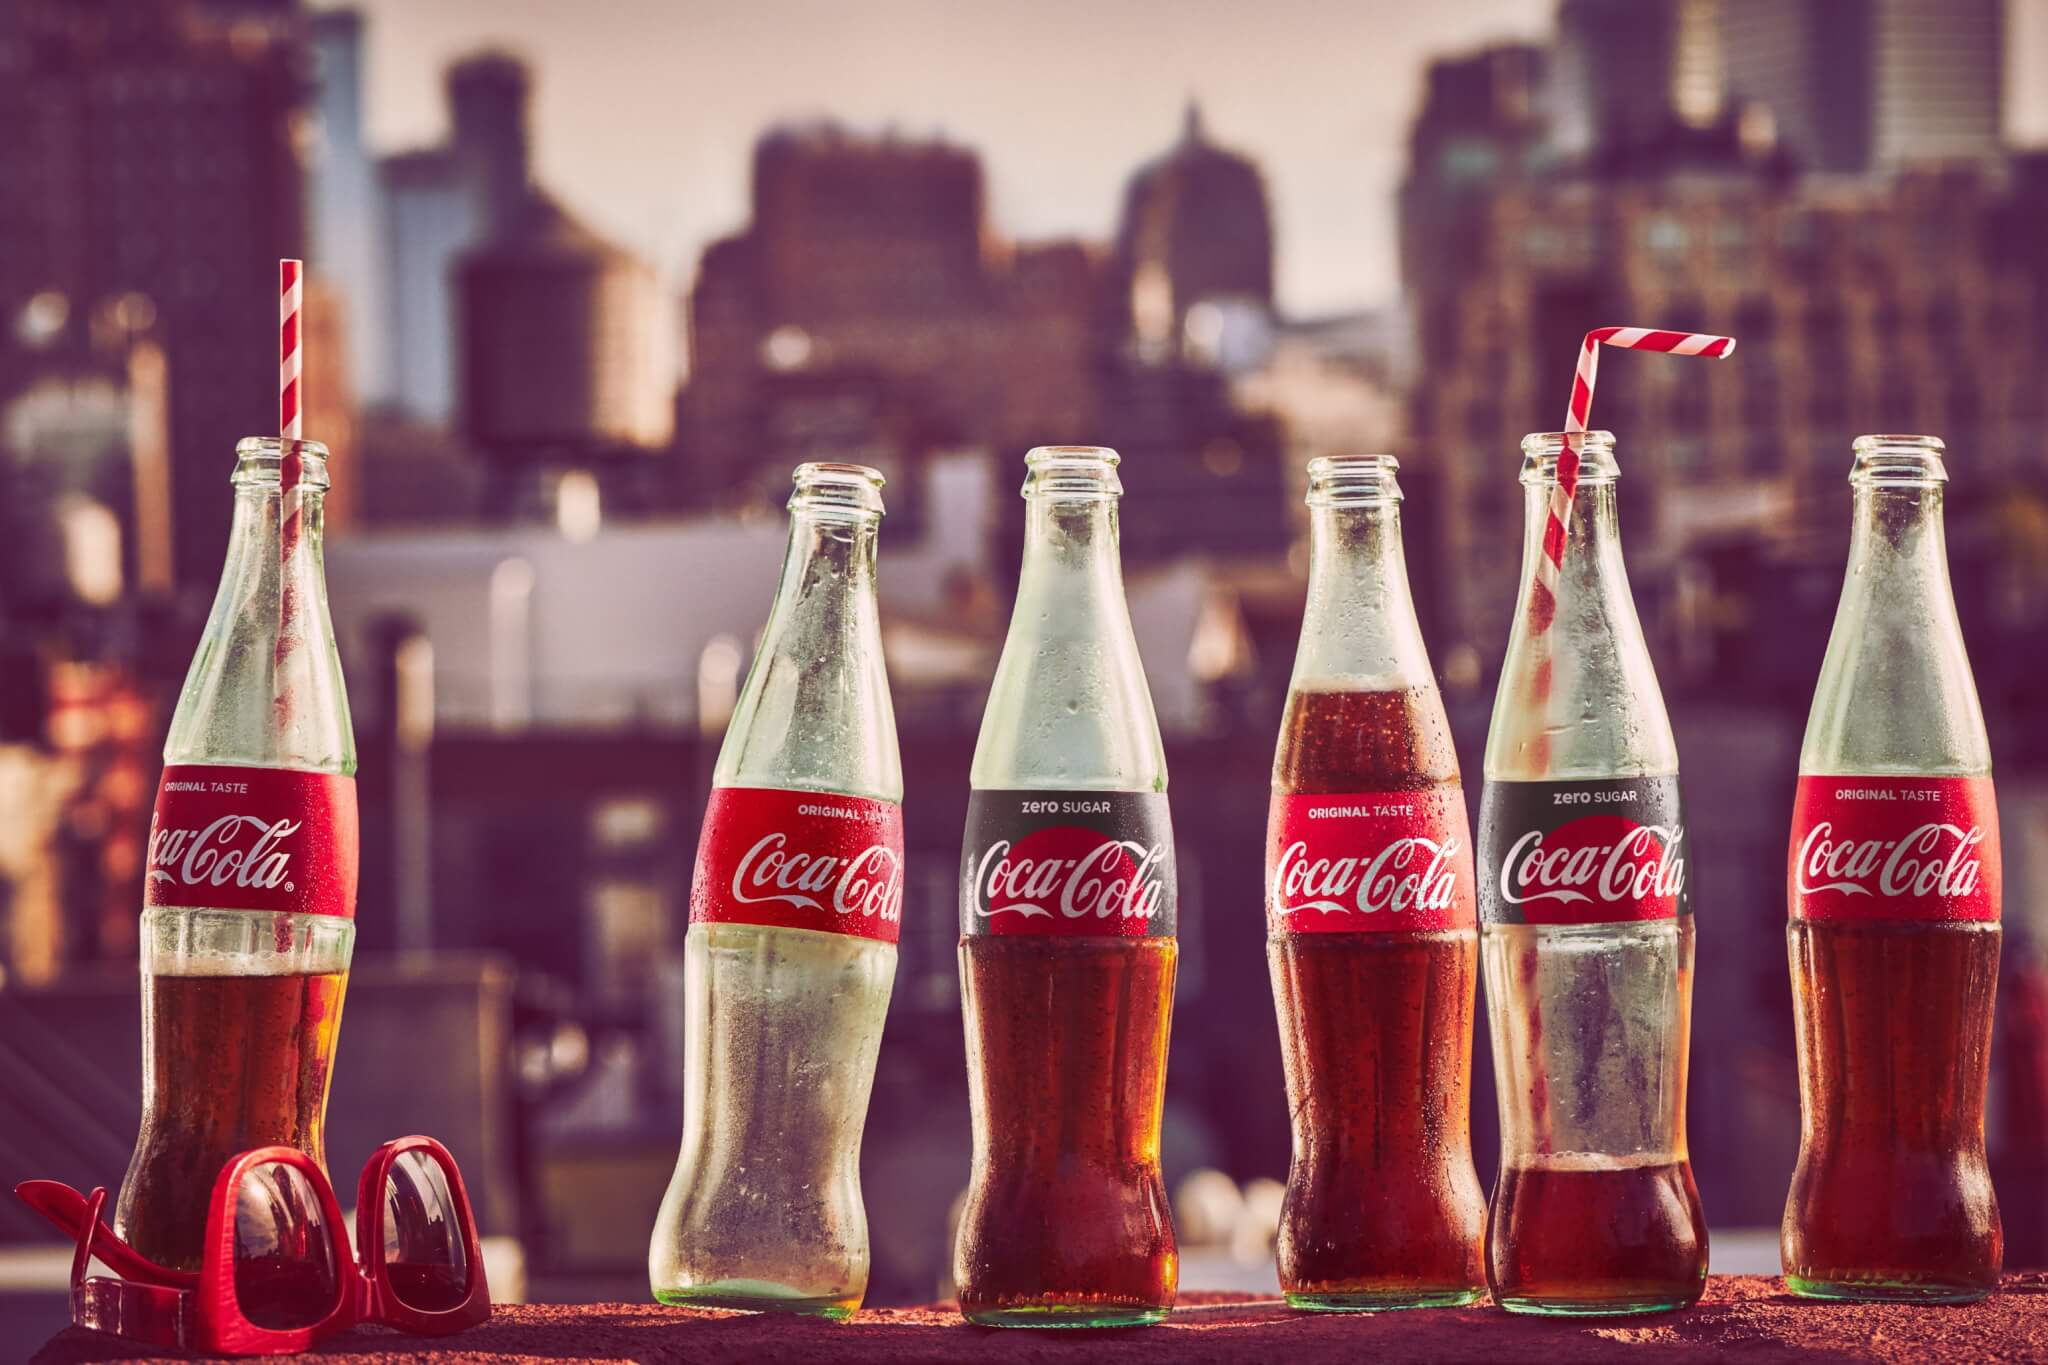 Coca-Cola glass bottles set against a skyline